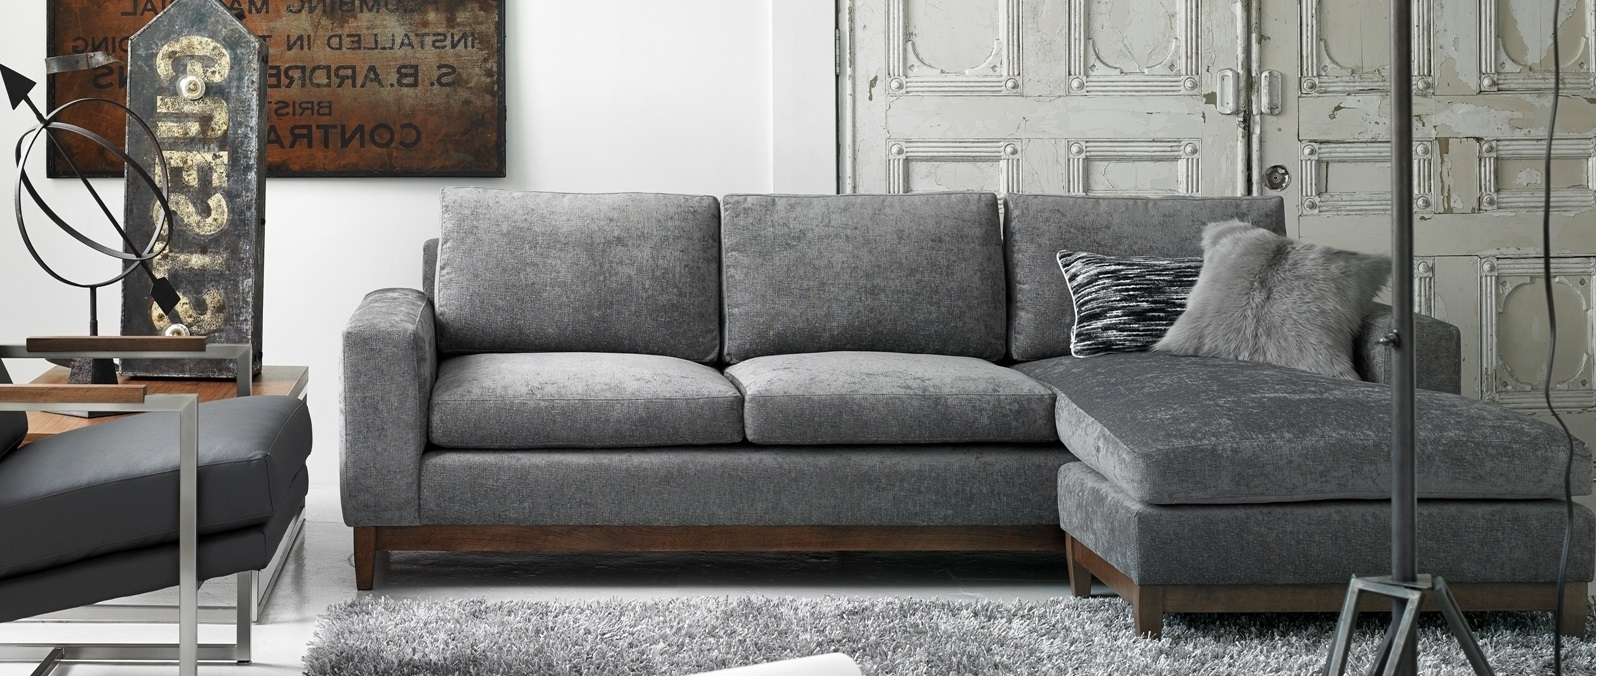 Most Recent Montreal Sectional Sofas For Modern Furniture Store Montreal And Ottawa (View 9 of 15)